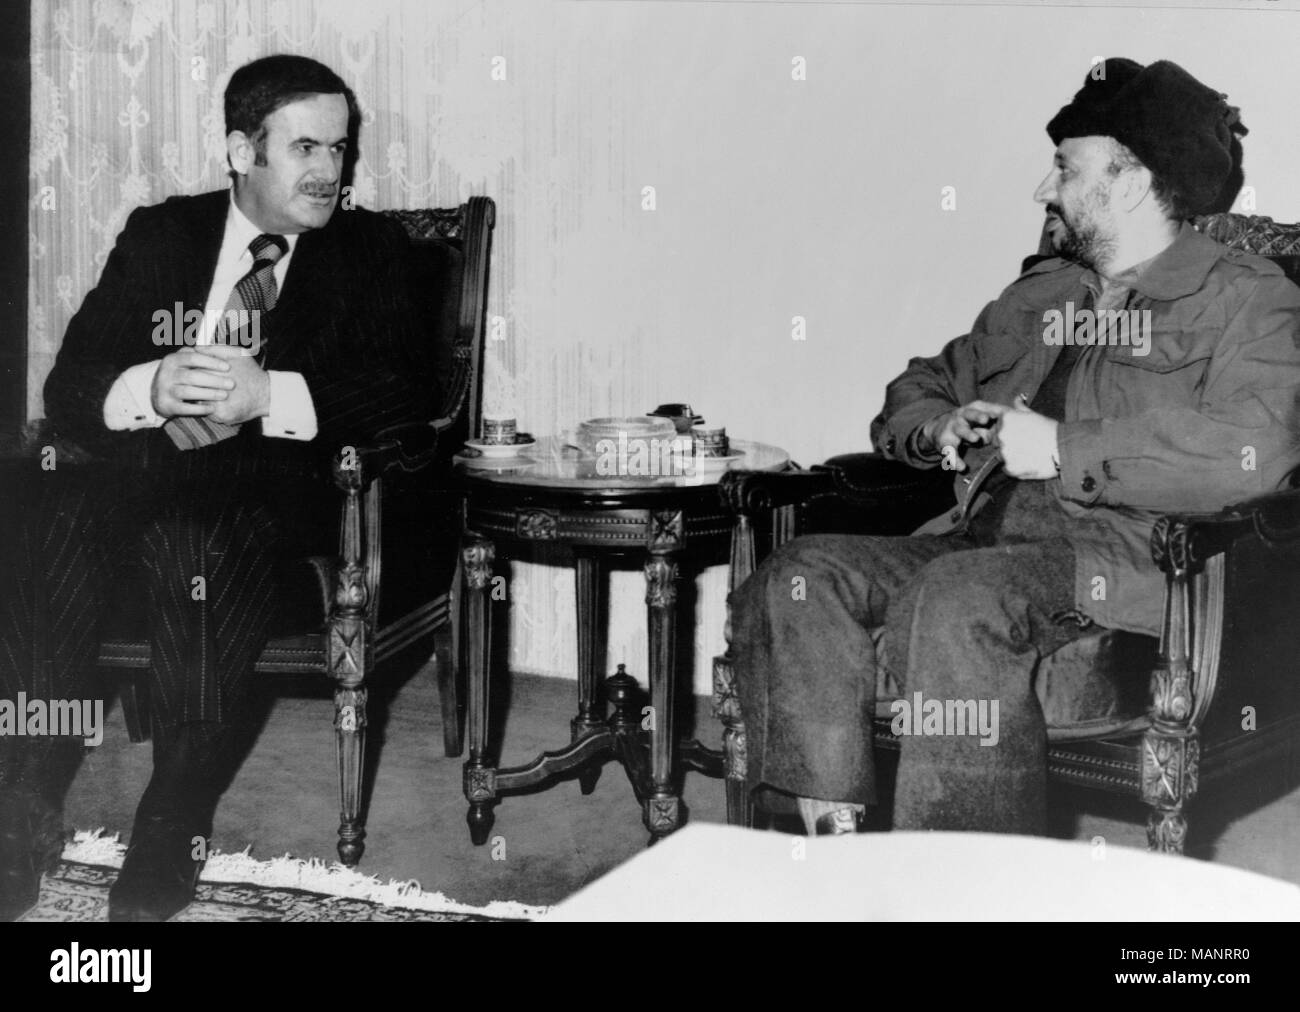 5th February 1977. Damascus. Syrian President Assad talks with PLO leader Yasser Arafat. - Stock Image